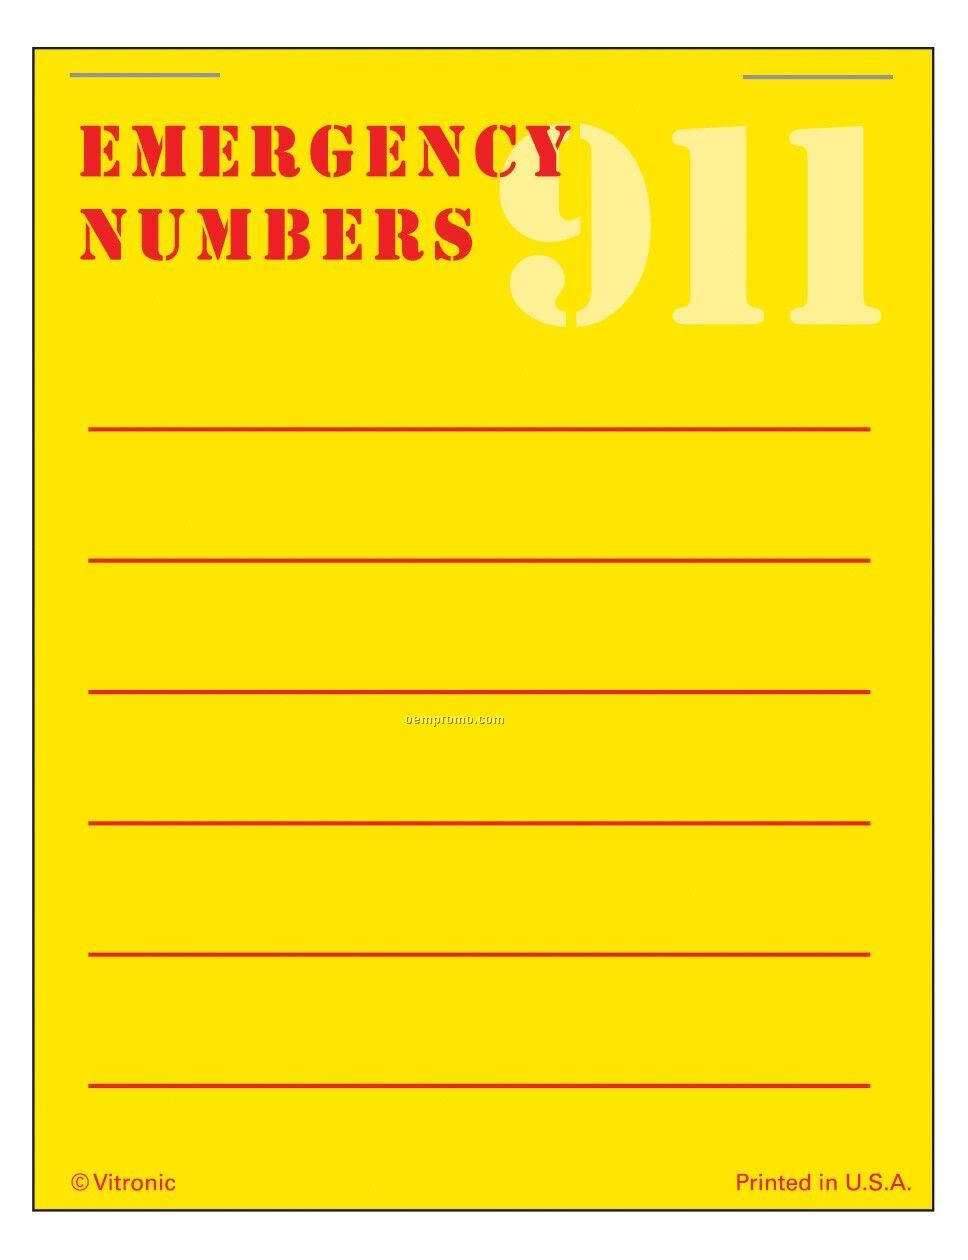 Super Size Emergency # List Press-n-stick Calendar Pad (Thru 8/01/11)